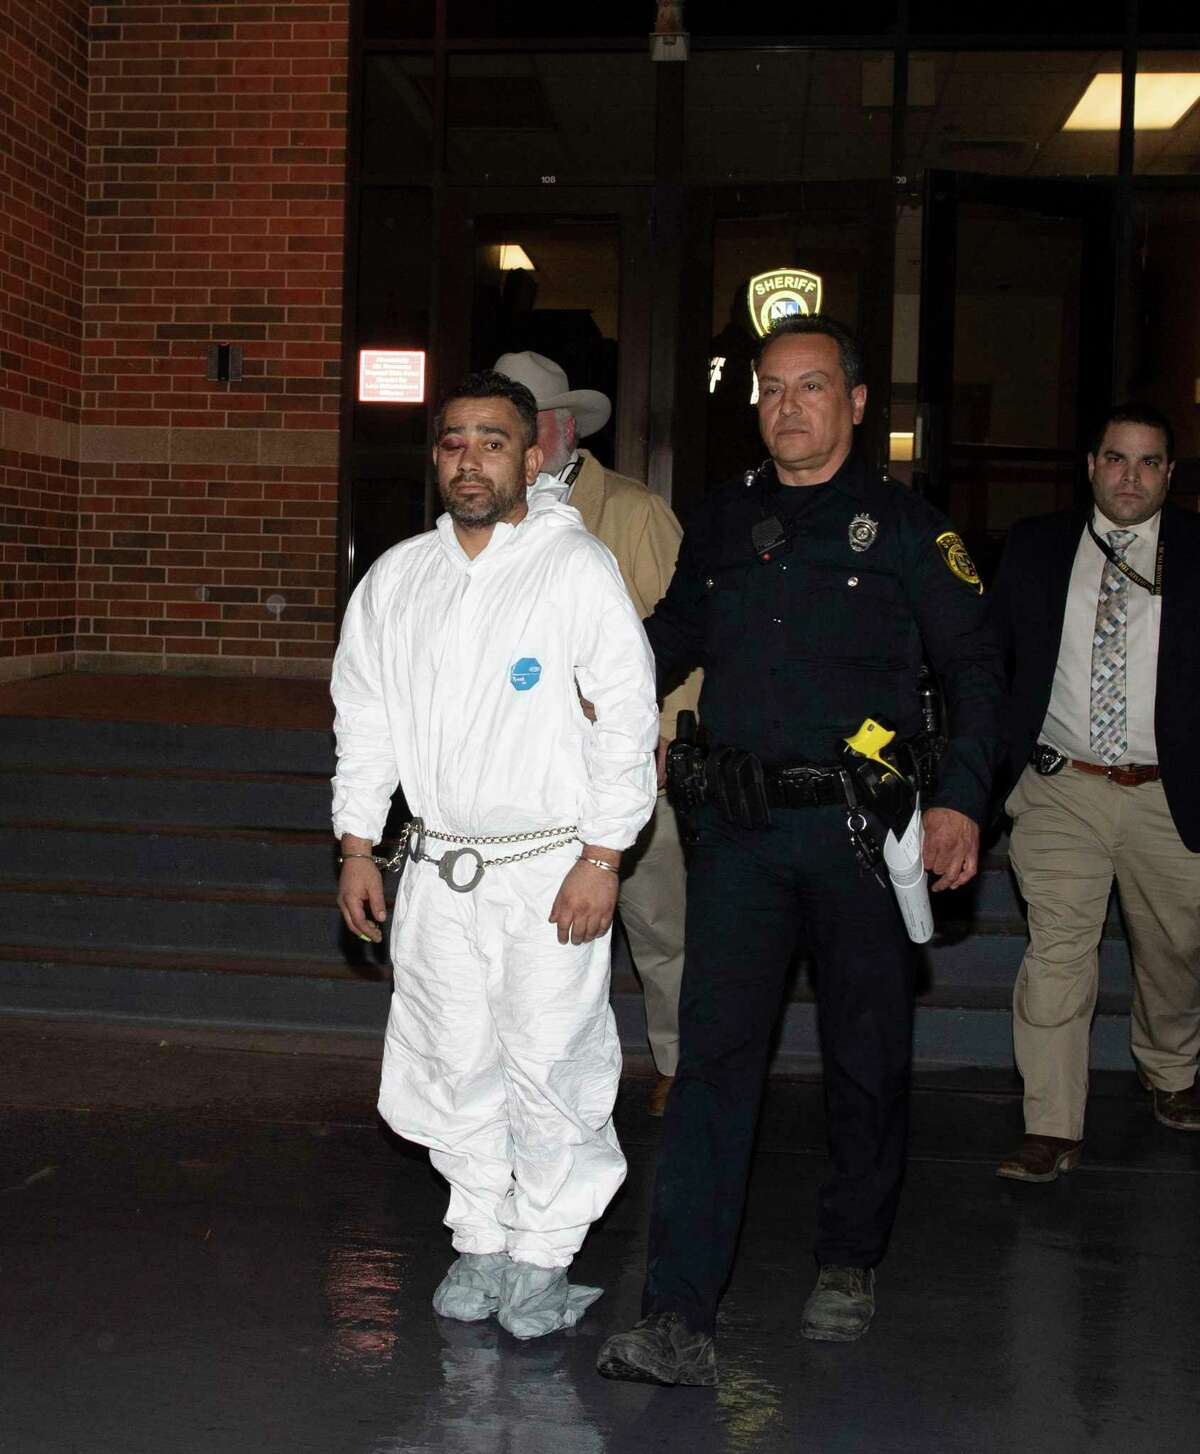 Michael Morales, suspect in two murders, is walked out of the Bexar County Sheriffs Office on Tuesday night, Feb. 11, 2020. He allegedly used a screw driver to kill a man over a drug debt, and then shot a woman afterward.